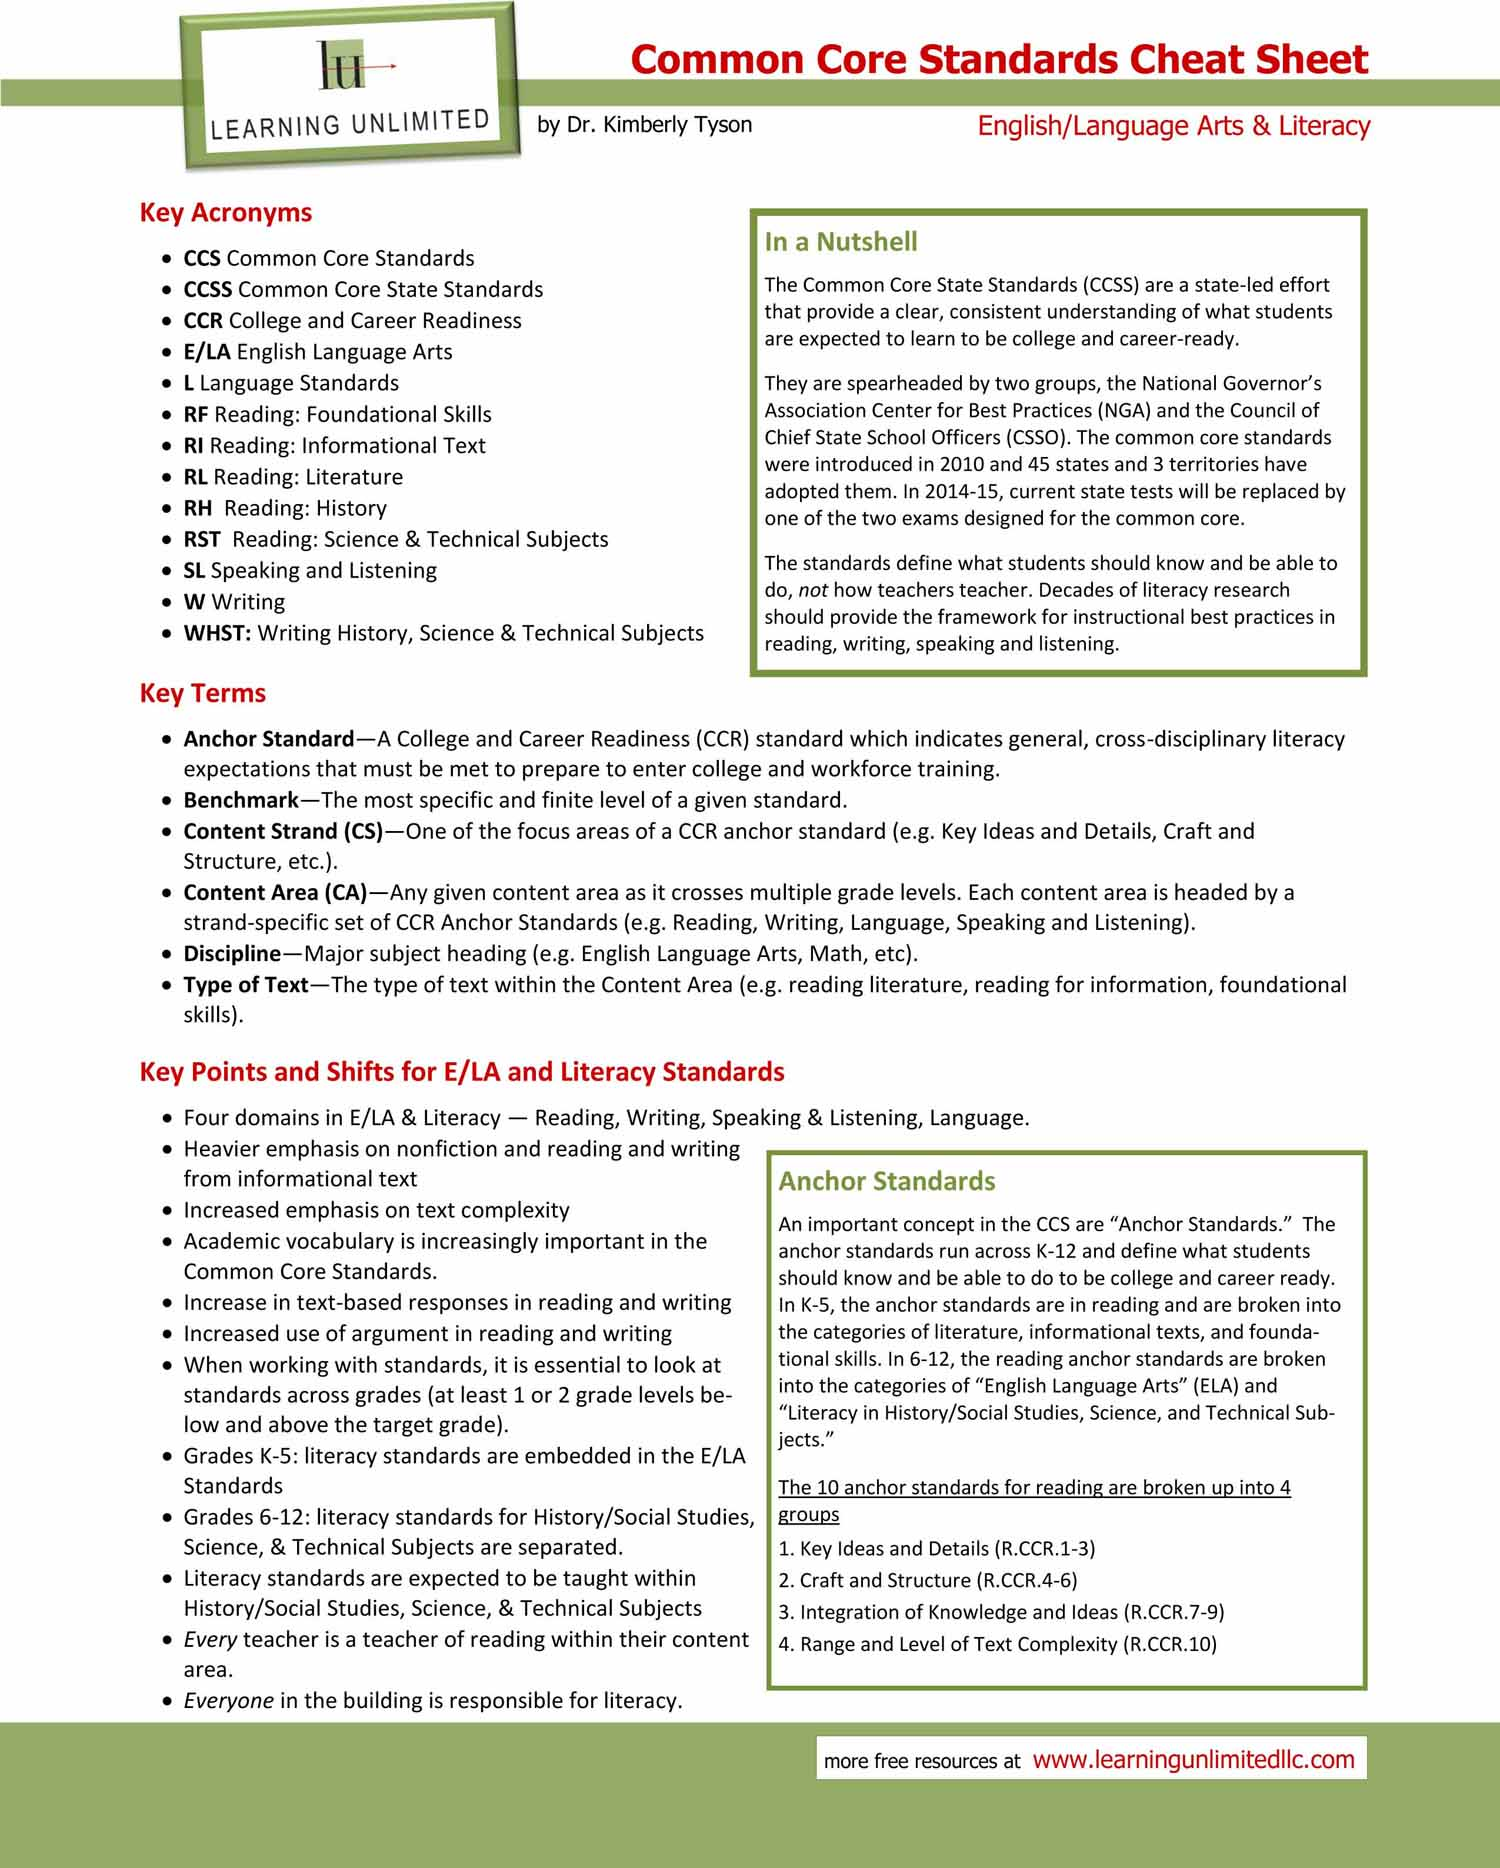 Quick Reference: A Common Core Cheat Sheet